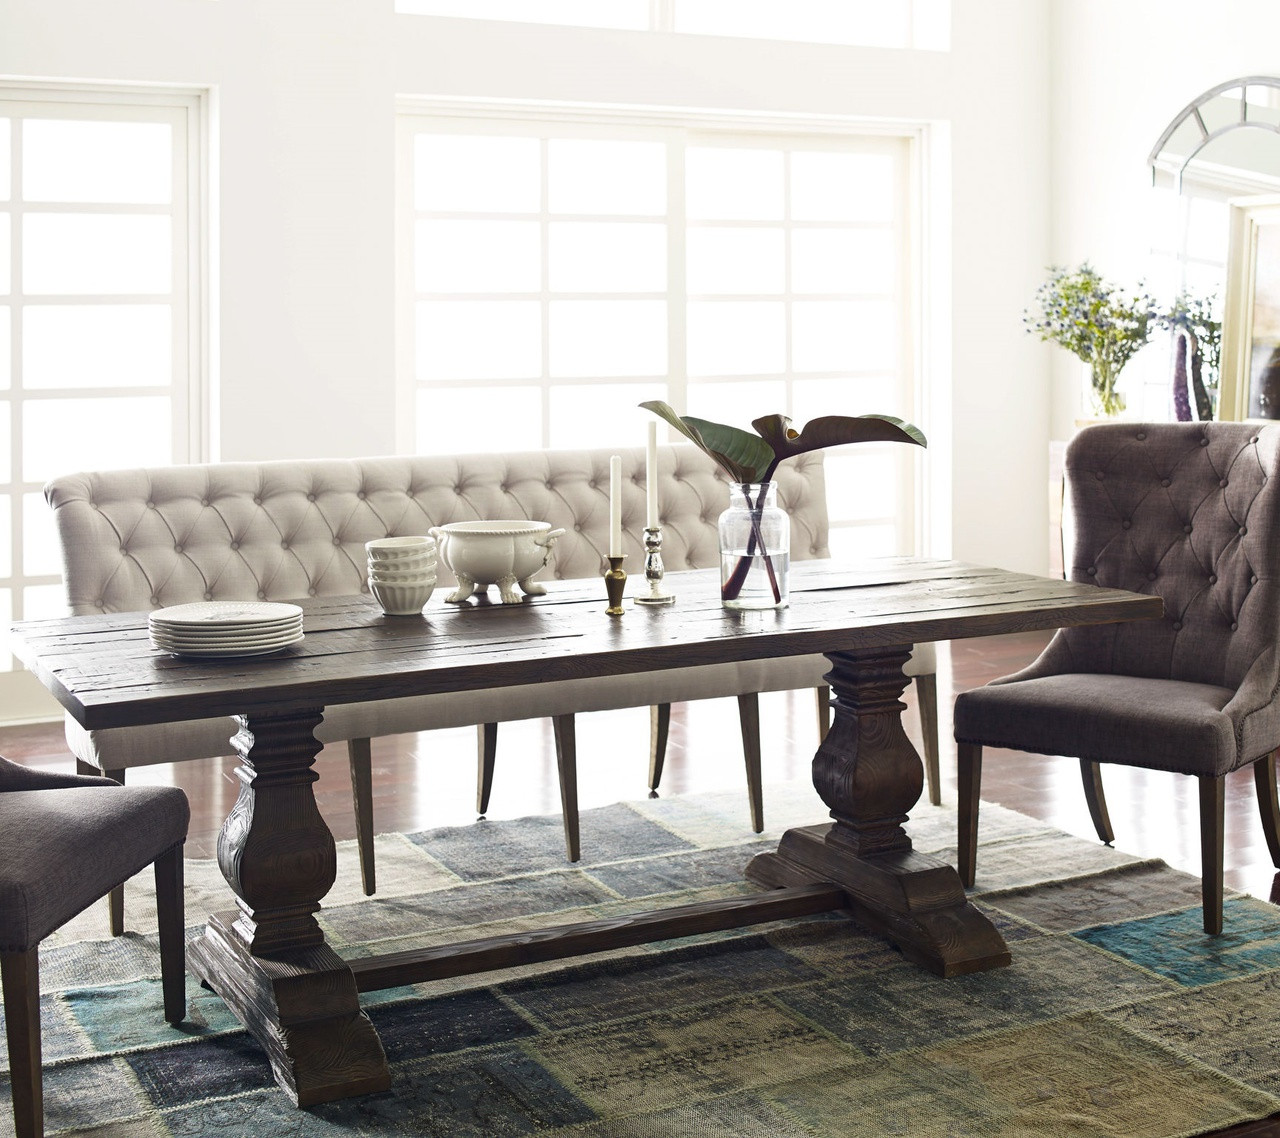 Dining Room With Bench: French Tufted Upholstered Dining Bench Banquette